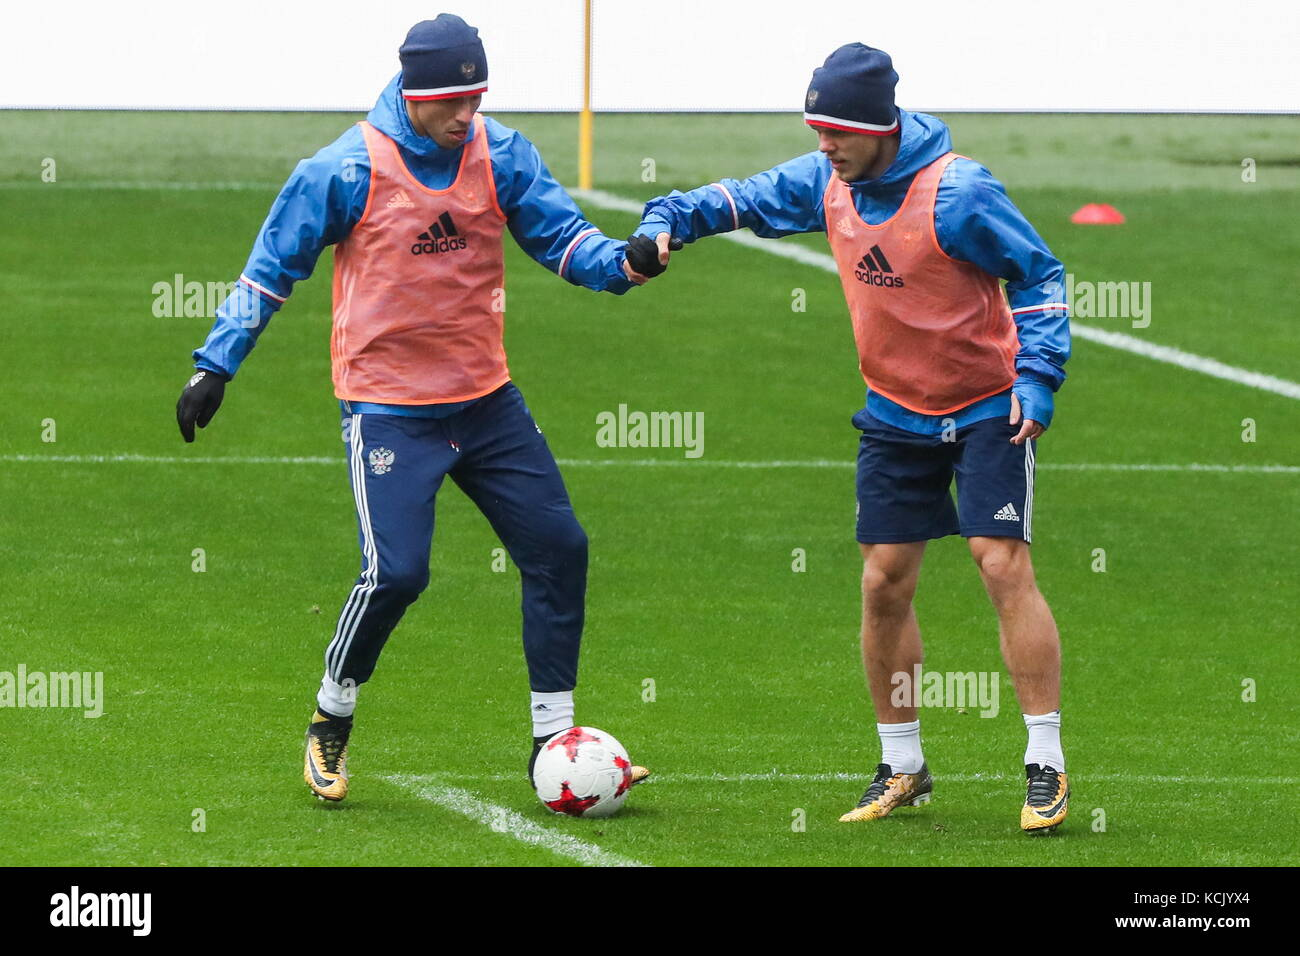 Moscow, Russia. 6th Oct, 2017. Fyodor Smolov (L) and Alexander Kokorin, members of Russian men's national football - Stock Image